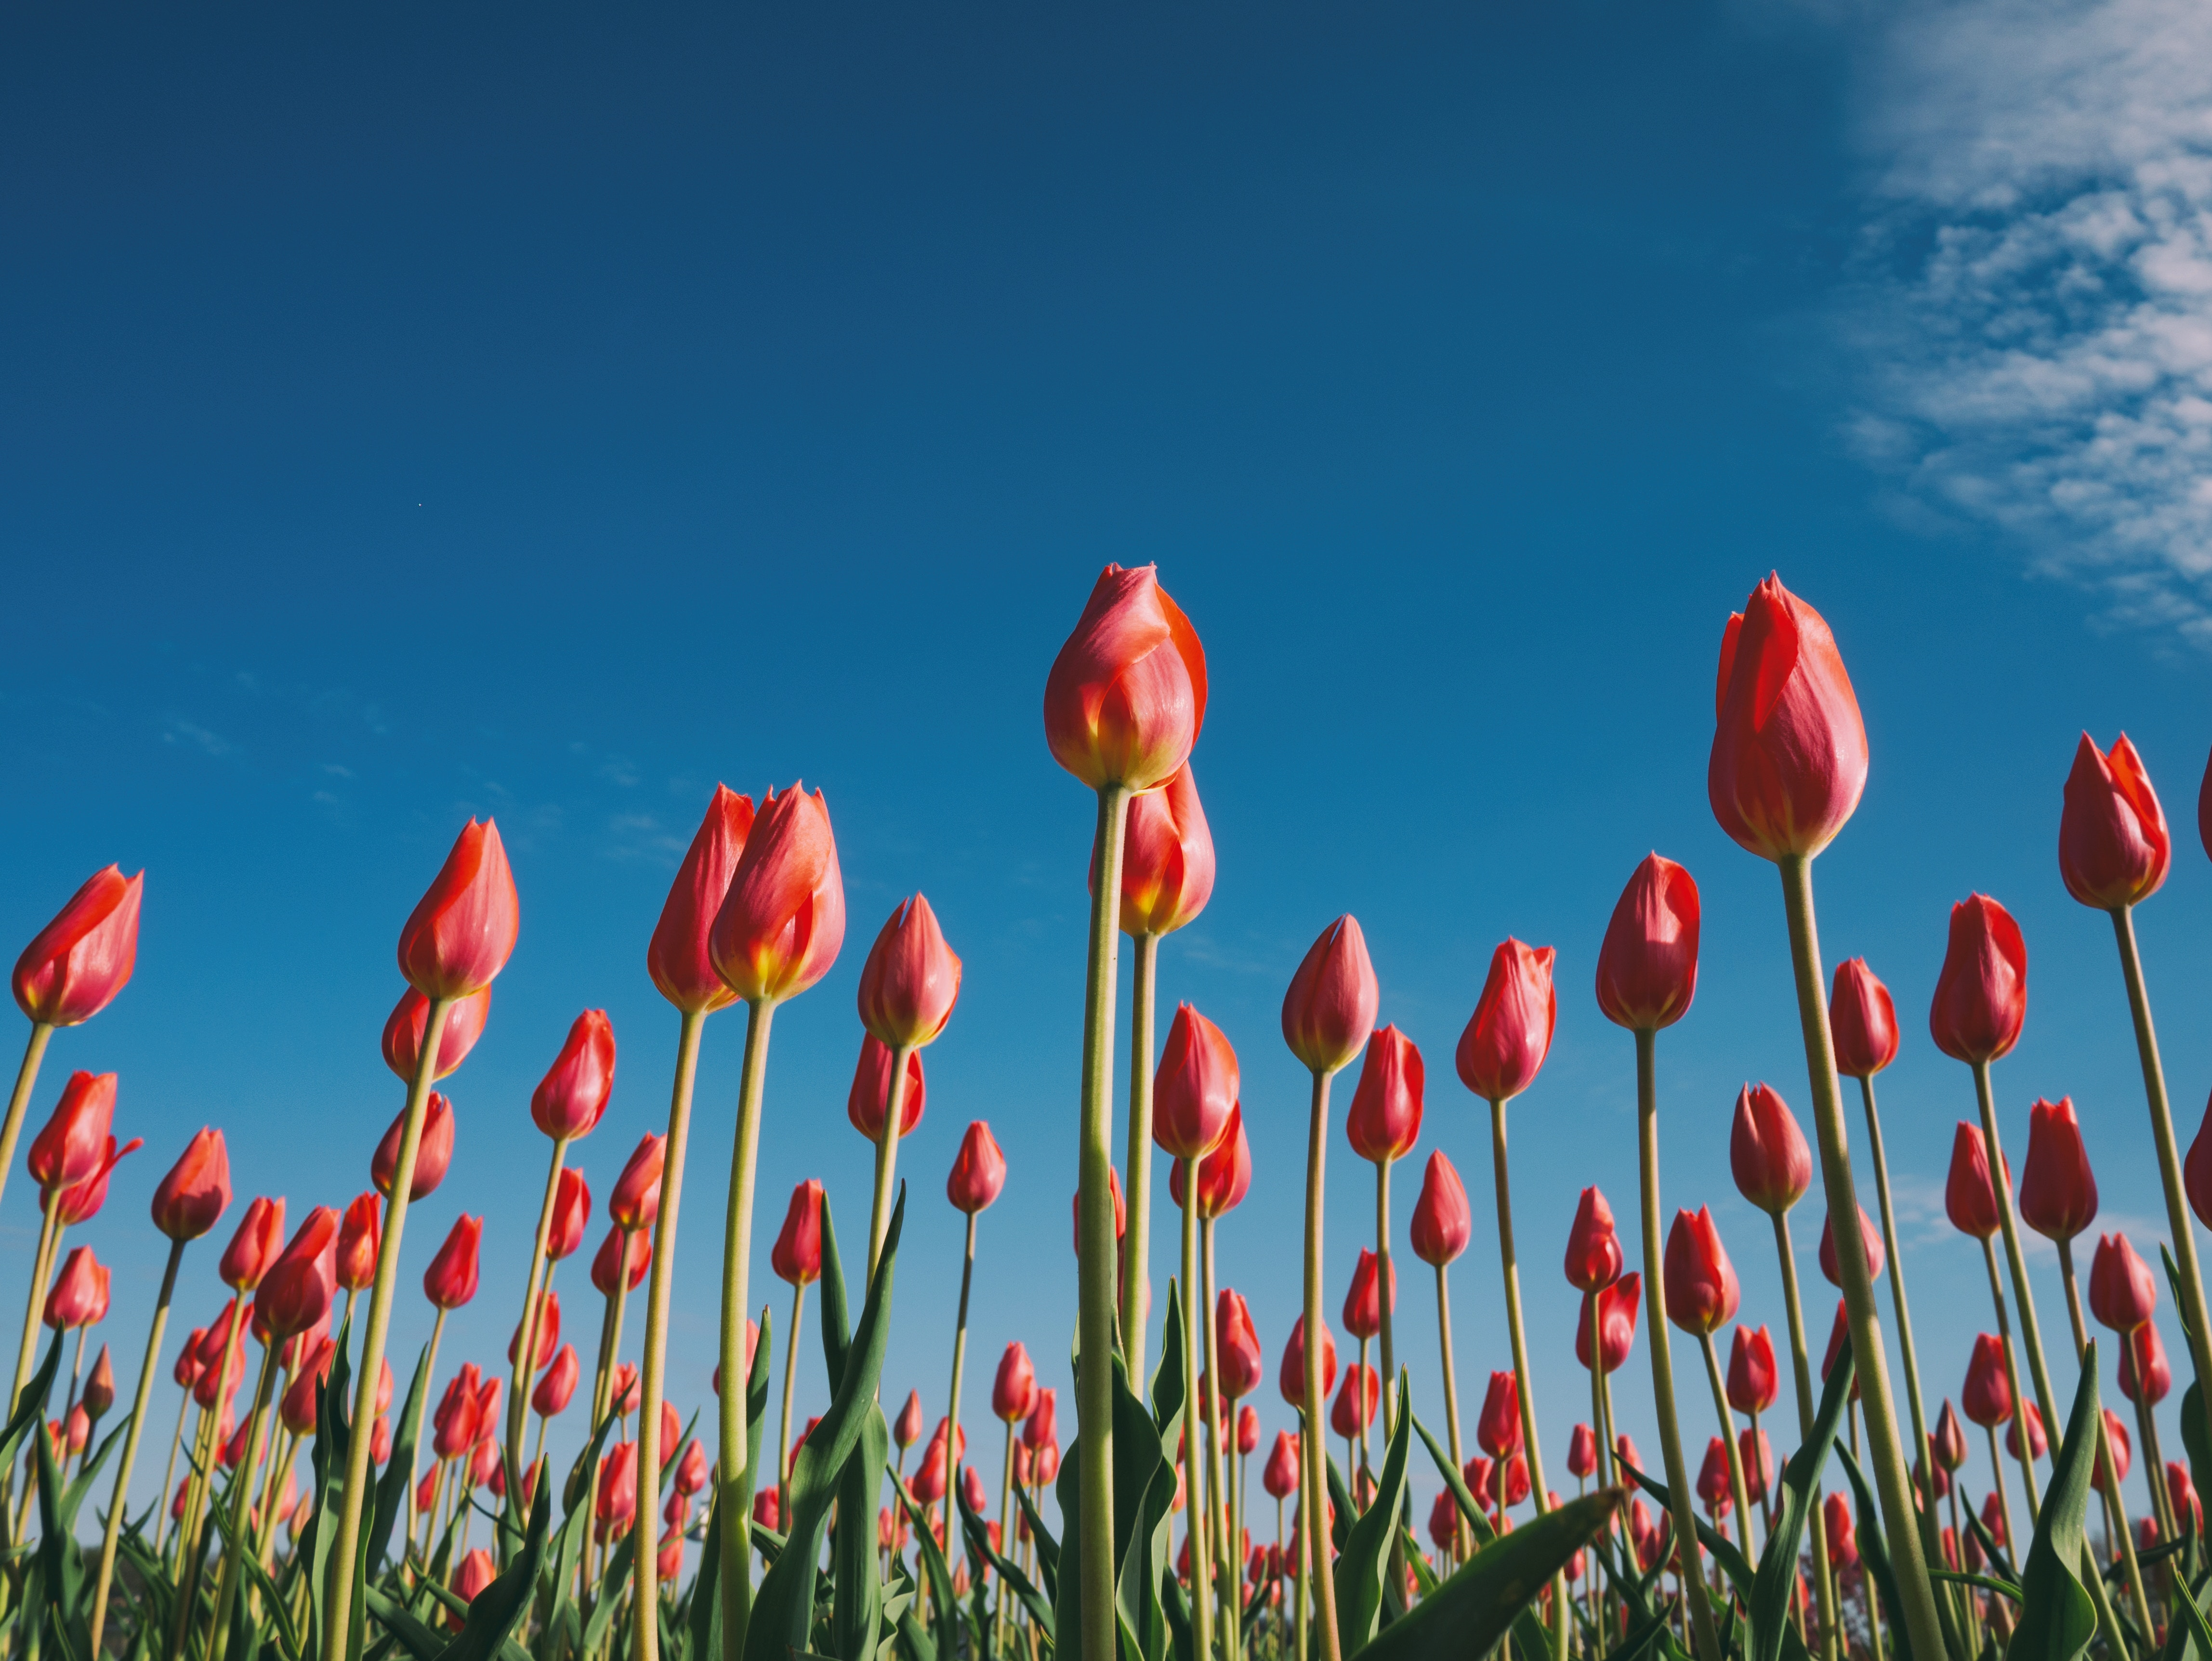 A close-up of a field of red tulips with green stems, with a backdrop of a clear blue sky